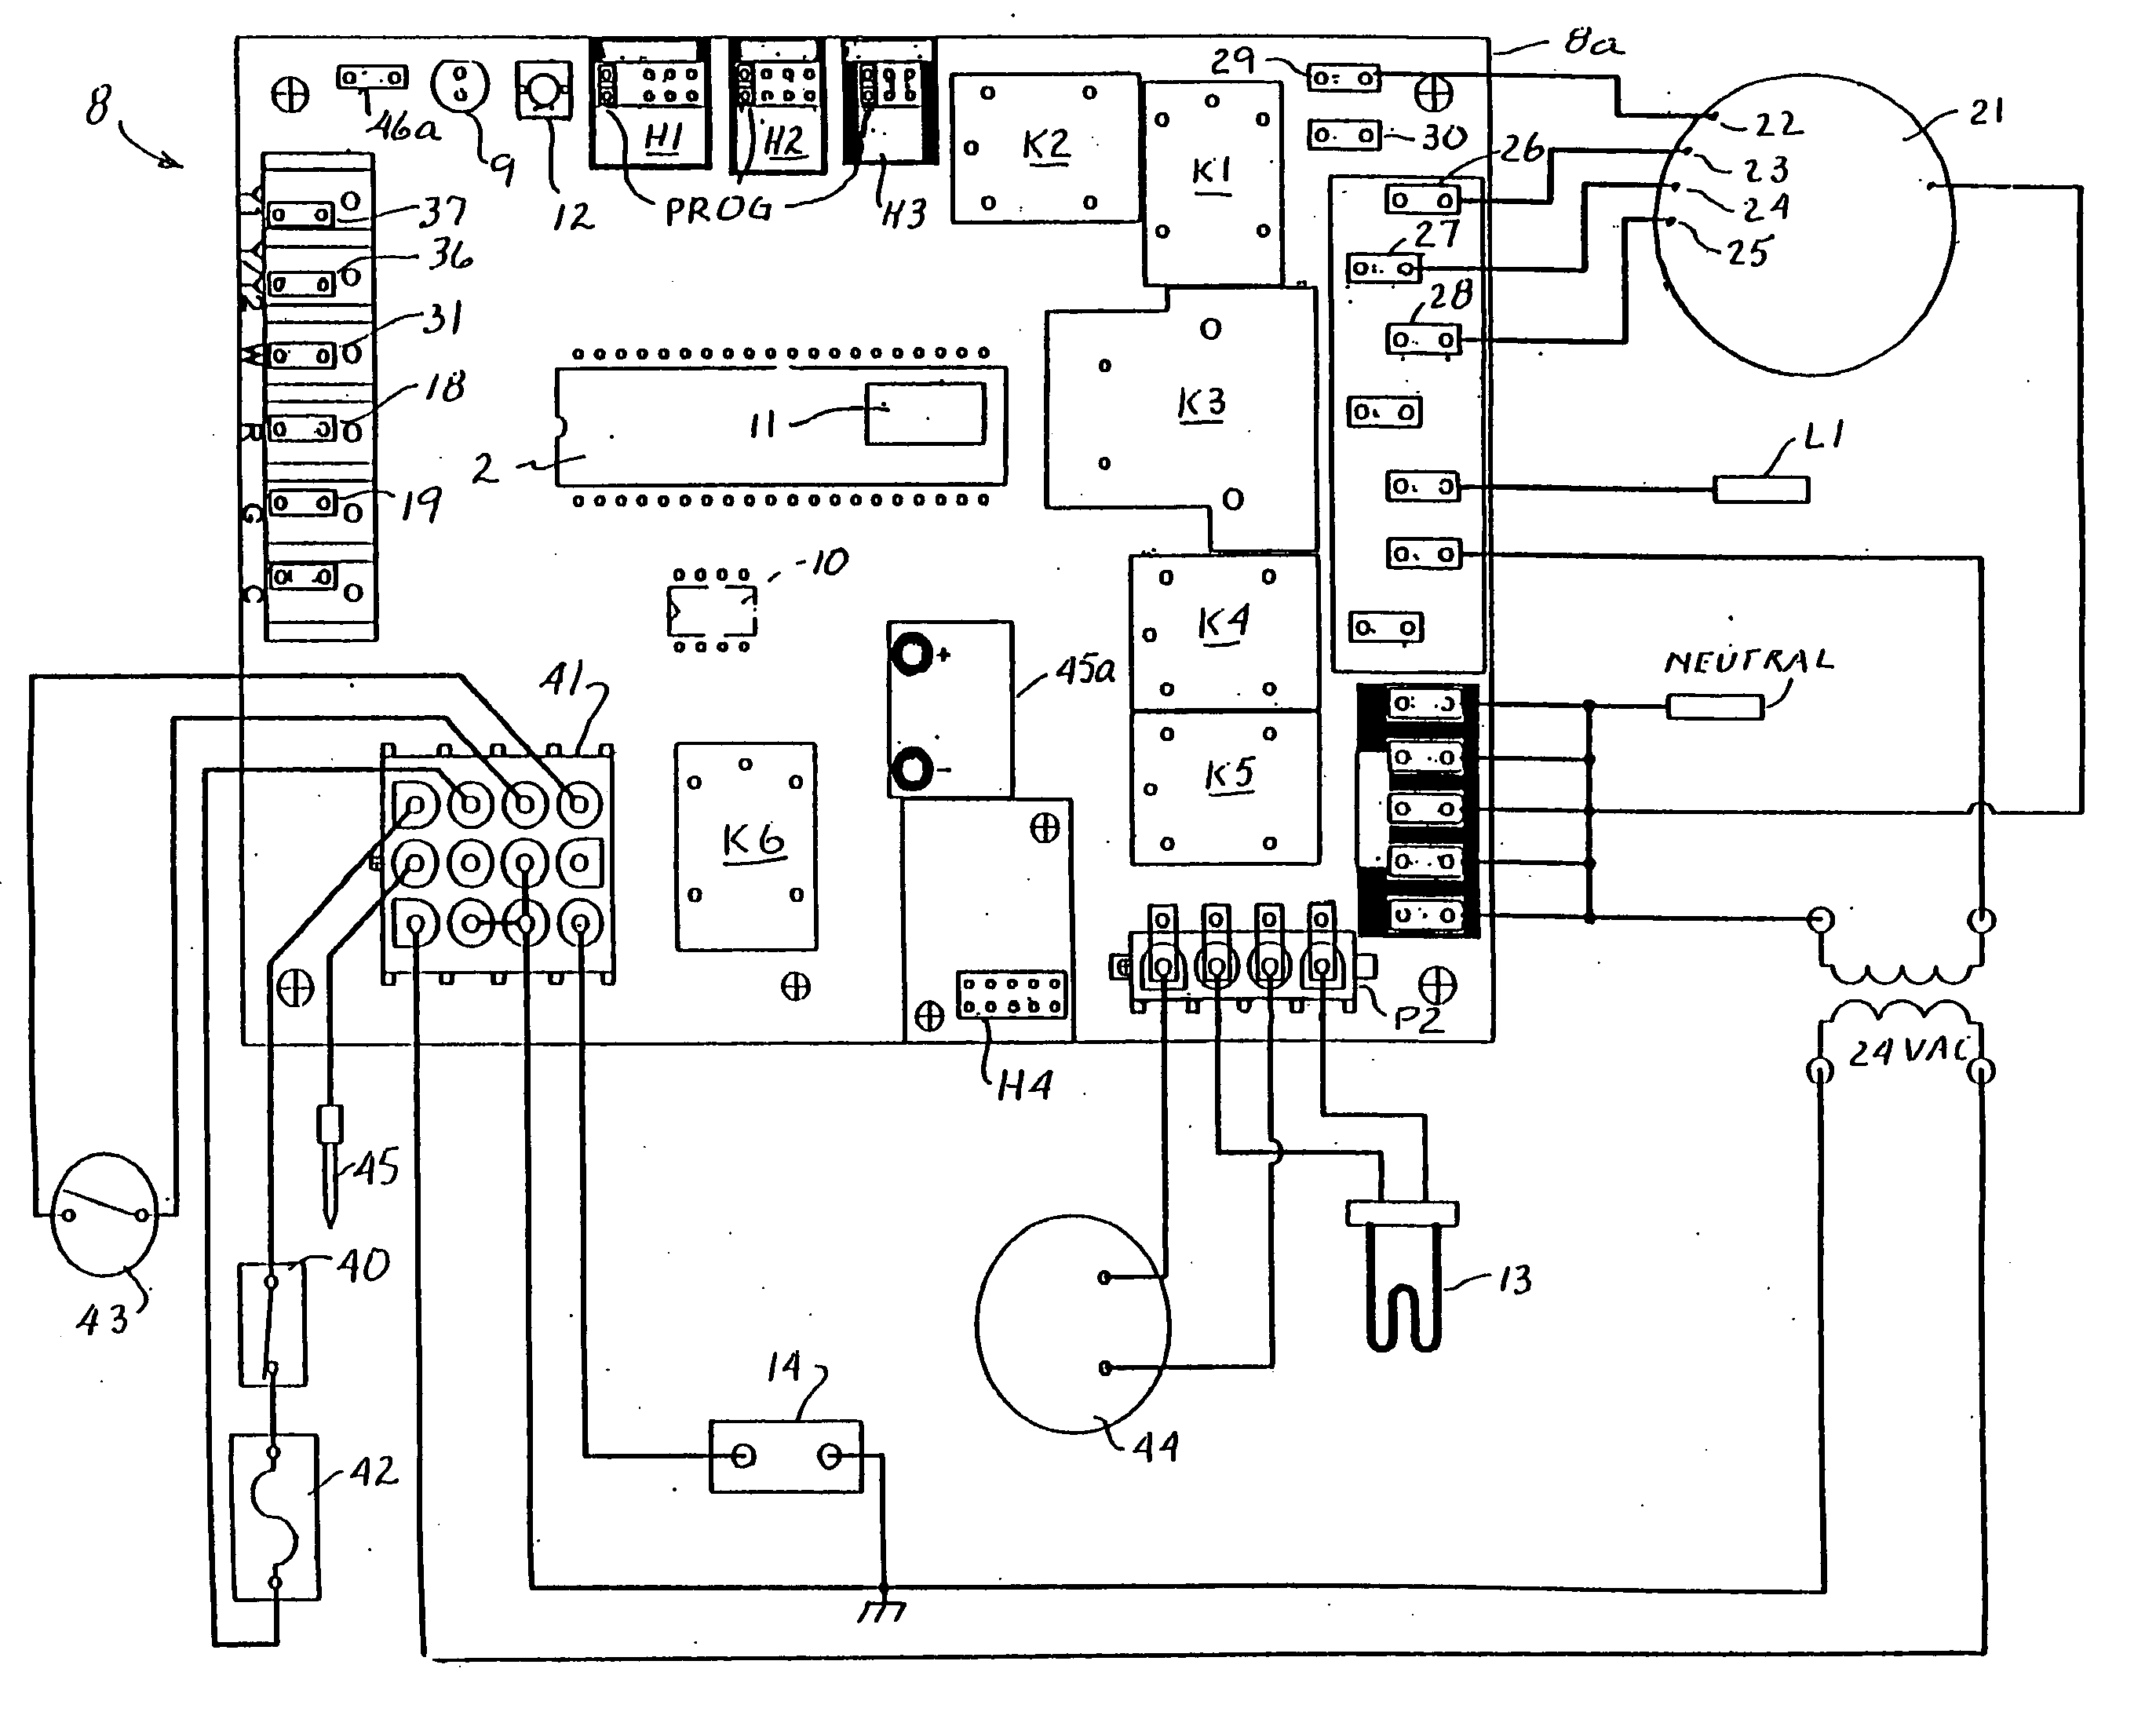 medium resolution of unique old gas furnace wiring diagram diagram diagramsample diagramtemplate wiringdiagram diagramchart